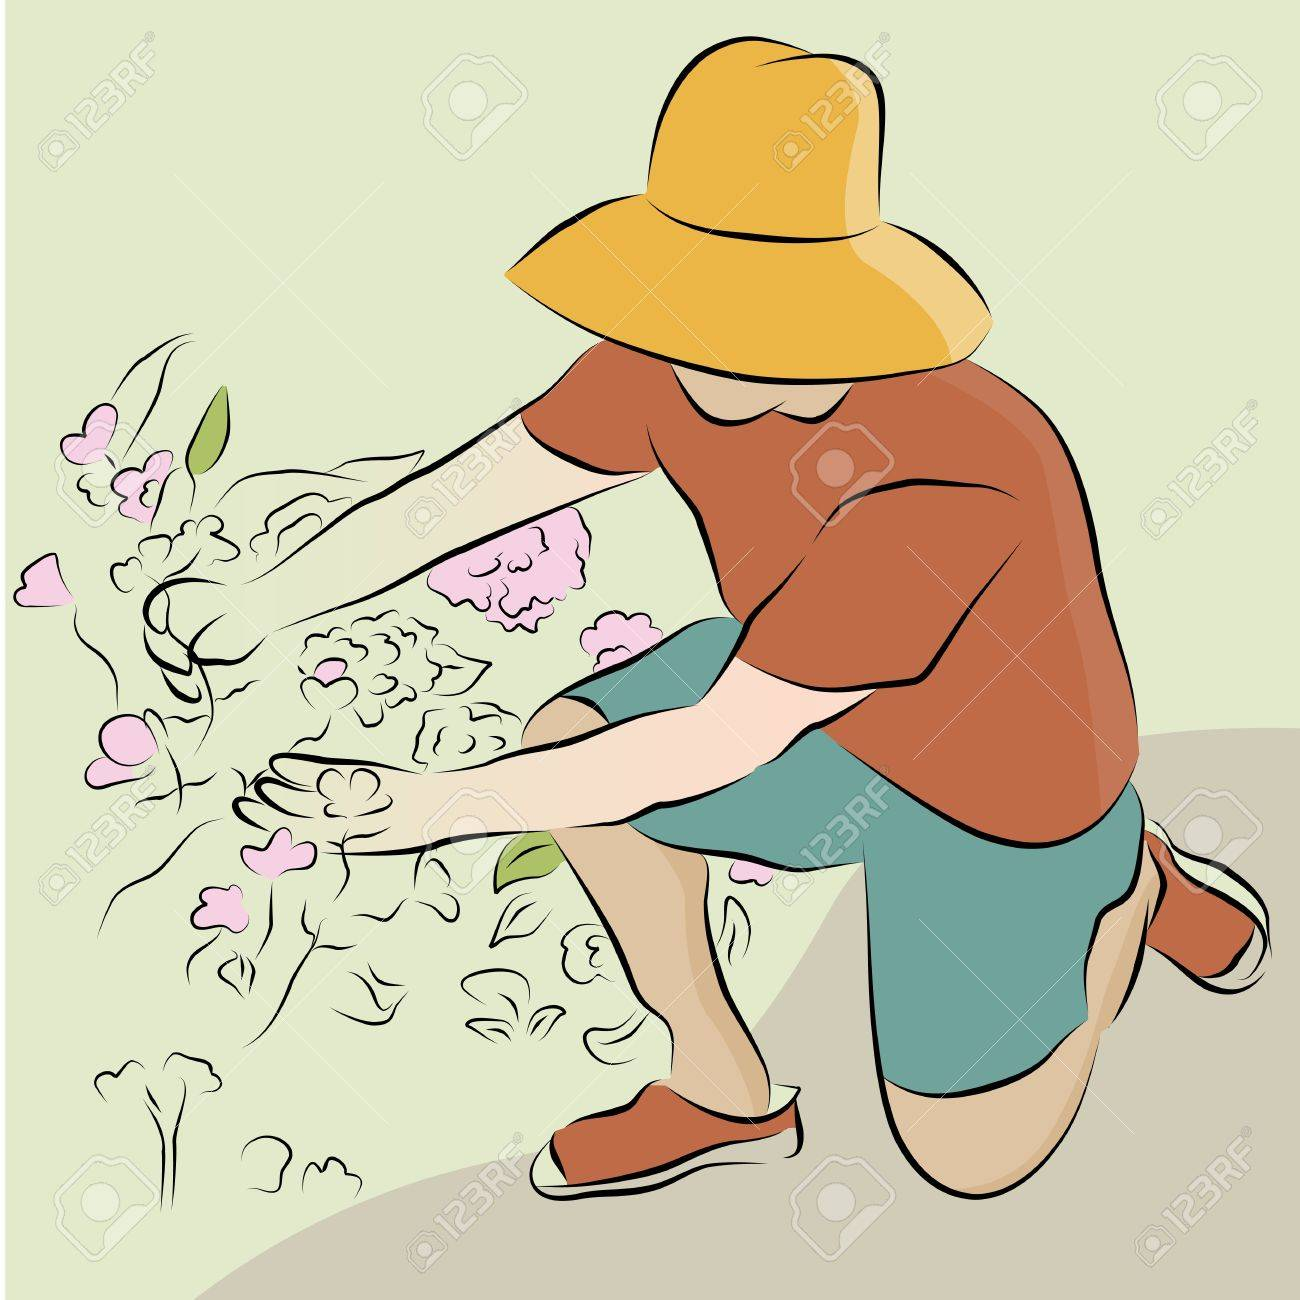 An image of a man pruning flower garden line drawing. Stock Vector - 9552308